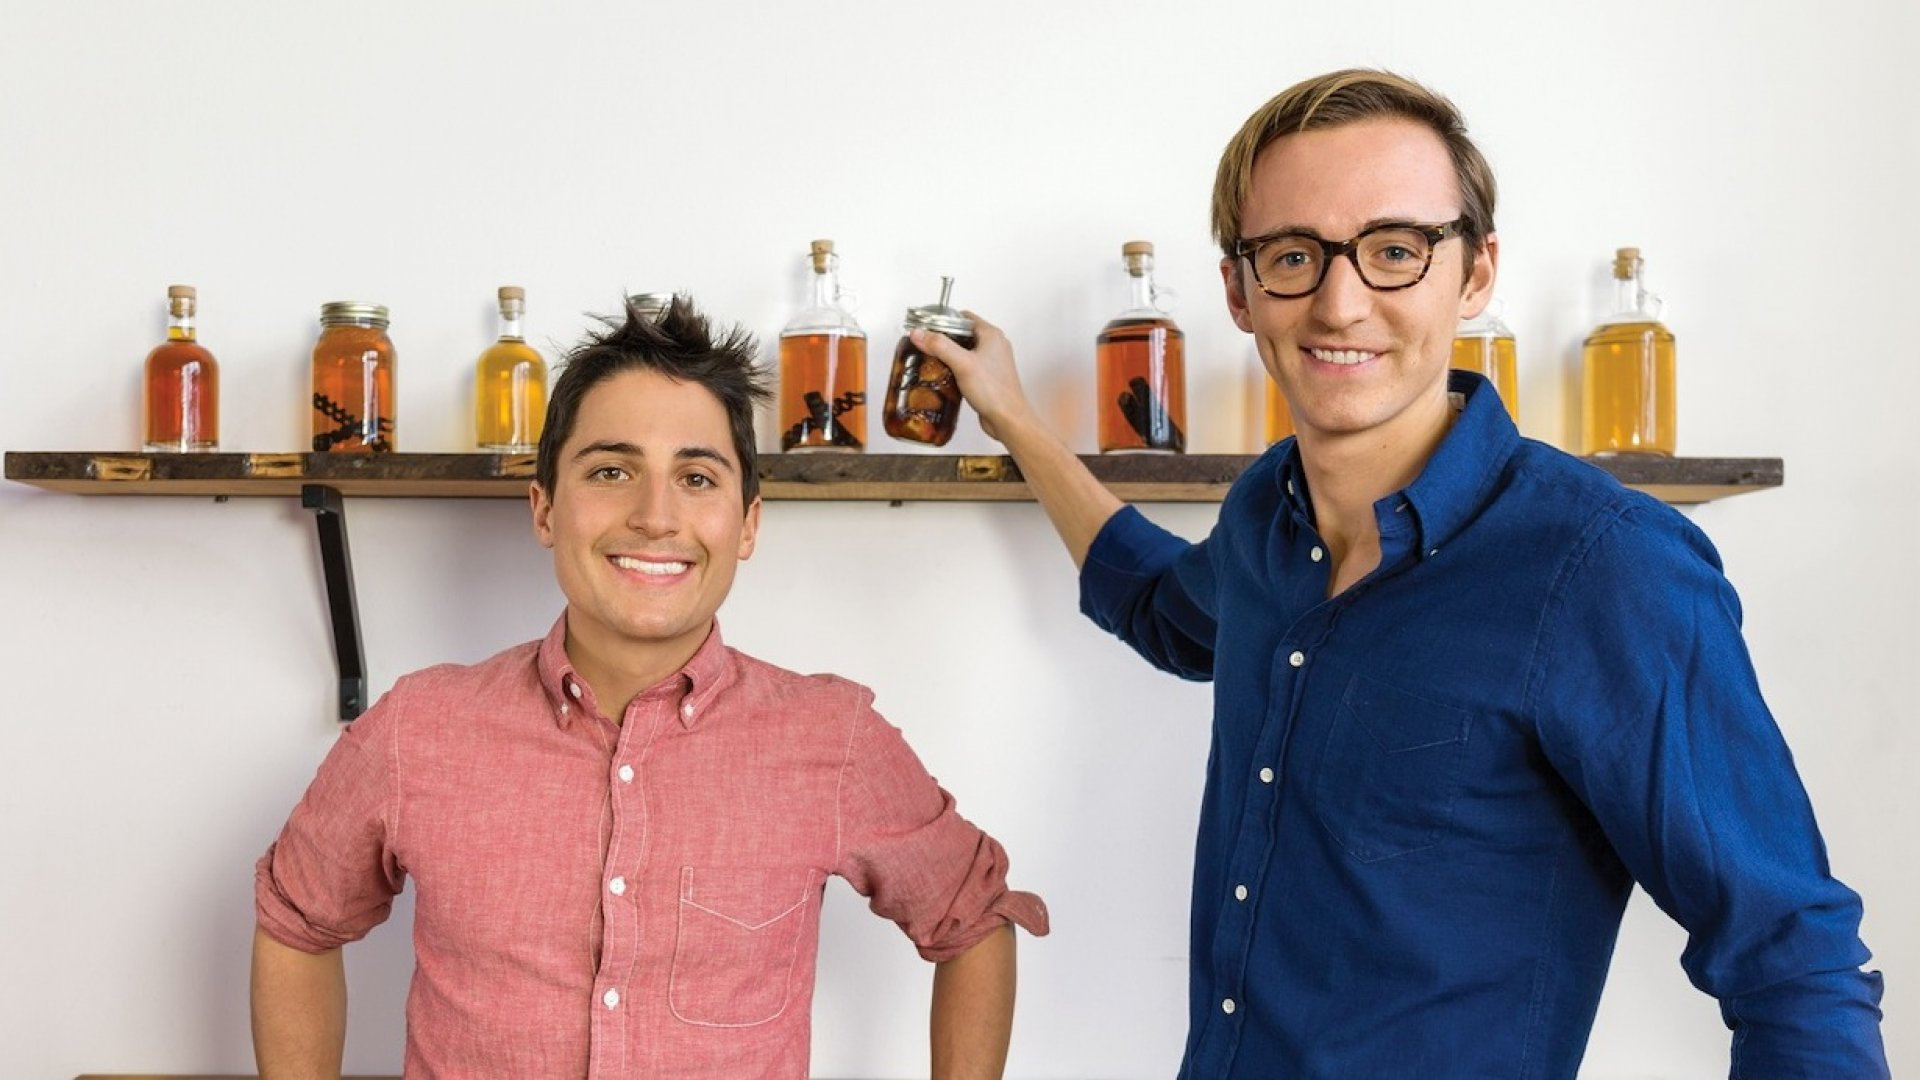 Co-founders of W&P Design Eric Prum and Josh Williams, who helped launch the Homemade Gin Kit.